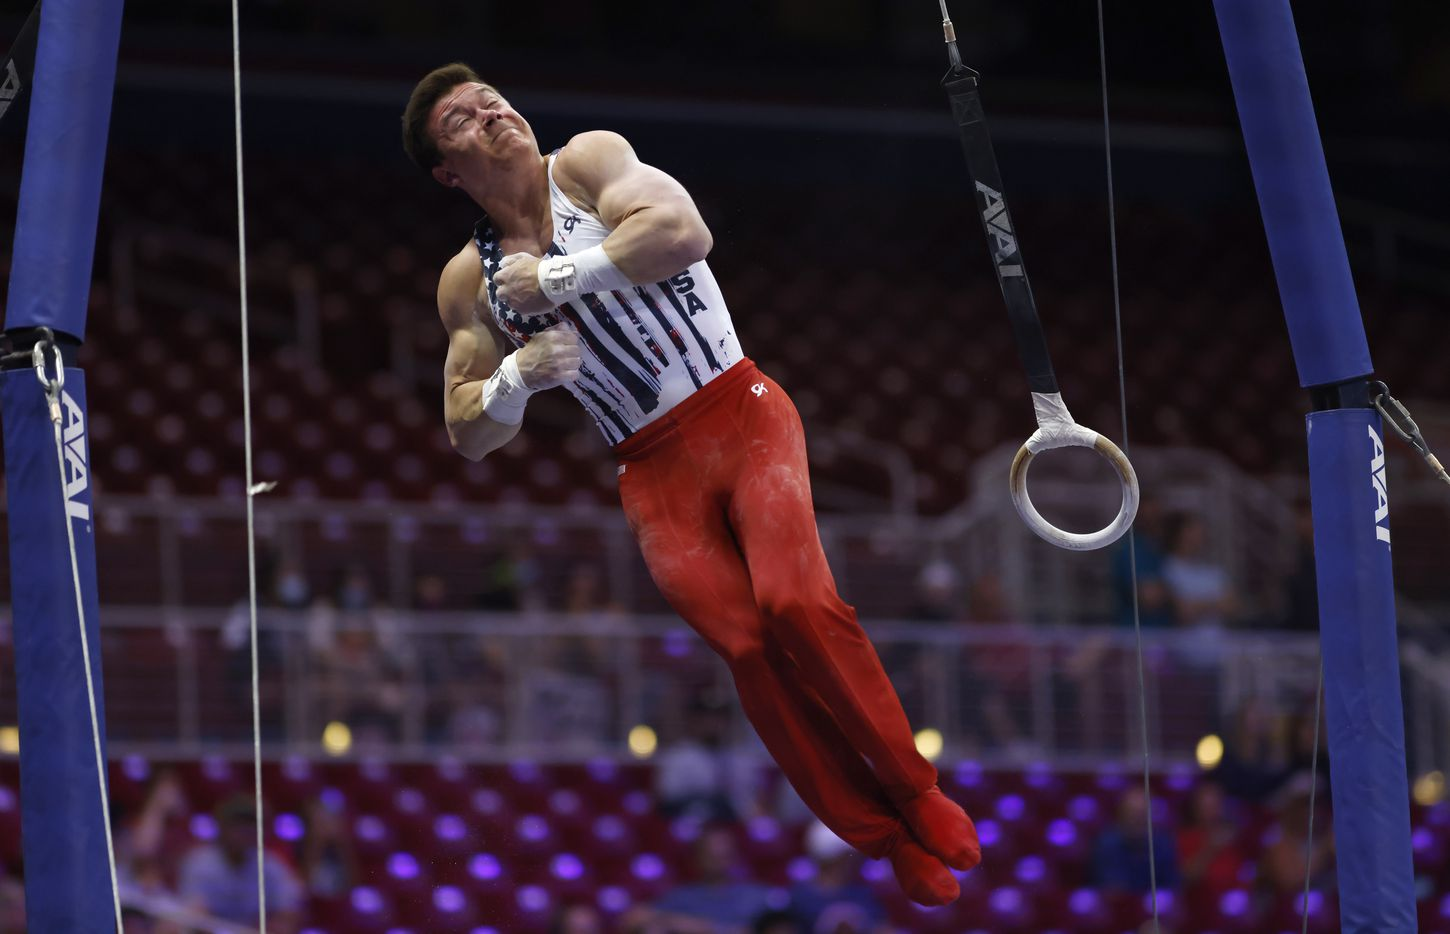 Brody Malone competes on the rings during day 2 of the men's 2021 U.S. Olympic Trials at America's Center on Saturday, June 26, 2021 in St Louis, Missouri.(Vernon Bryant/The Dallas Morning News)